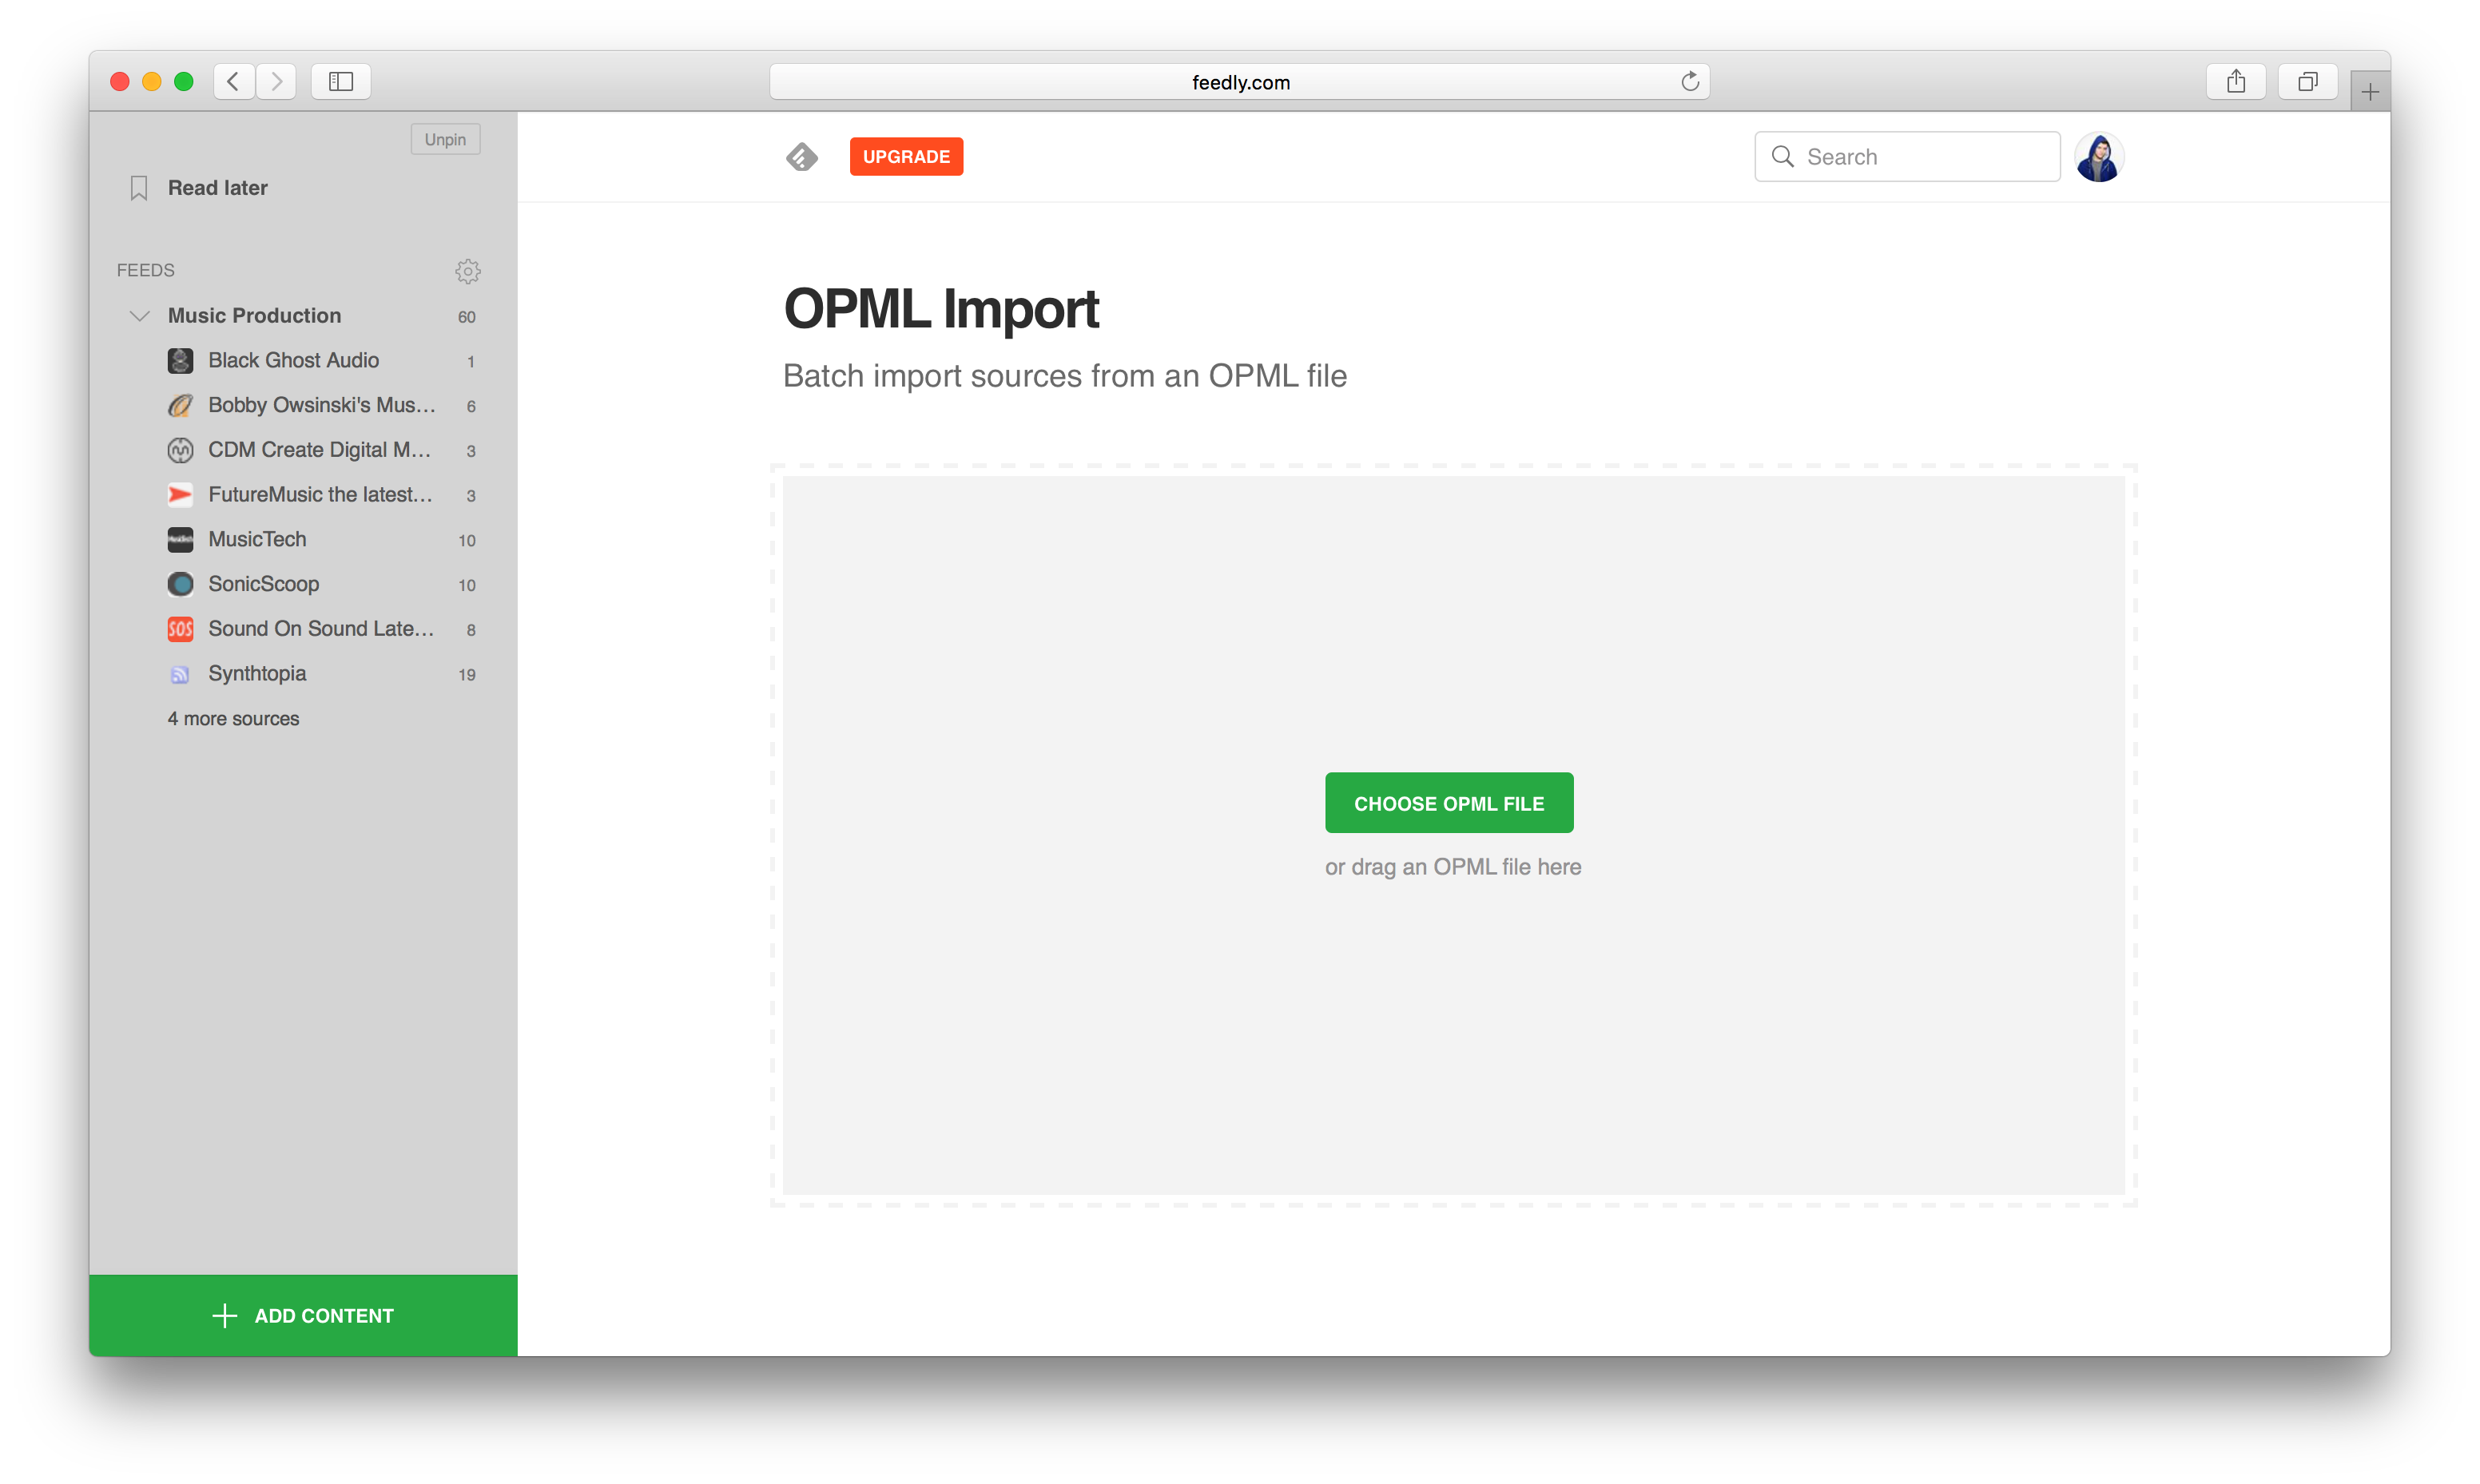 An image of Feedly's OPML Import Page.